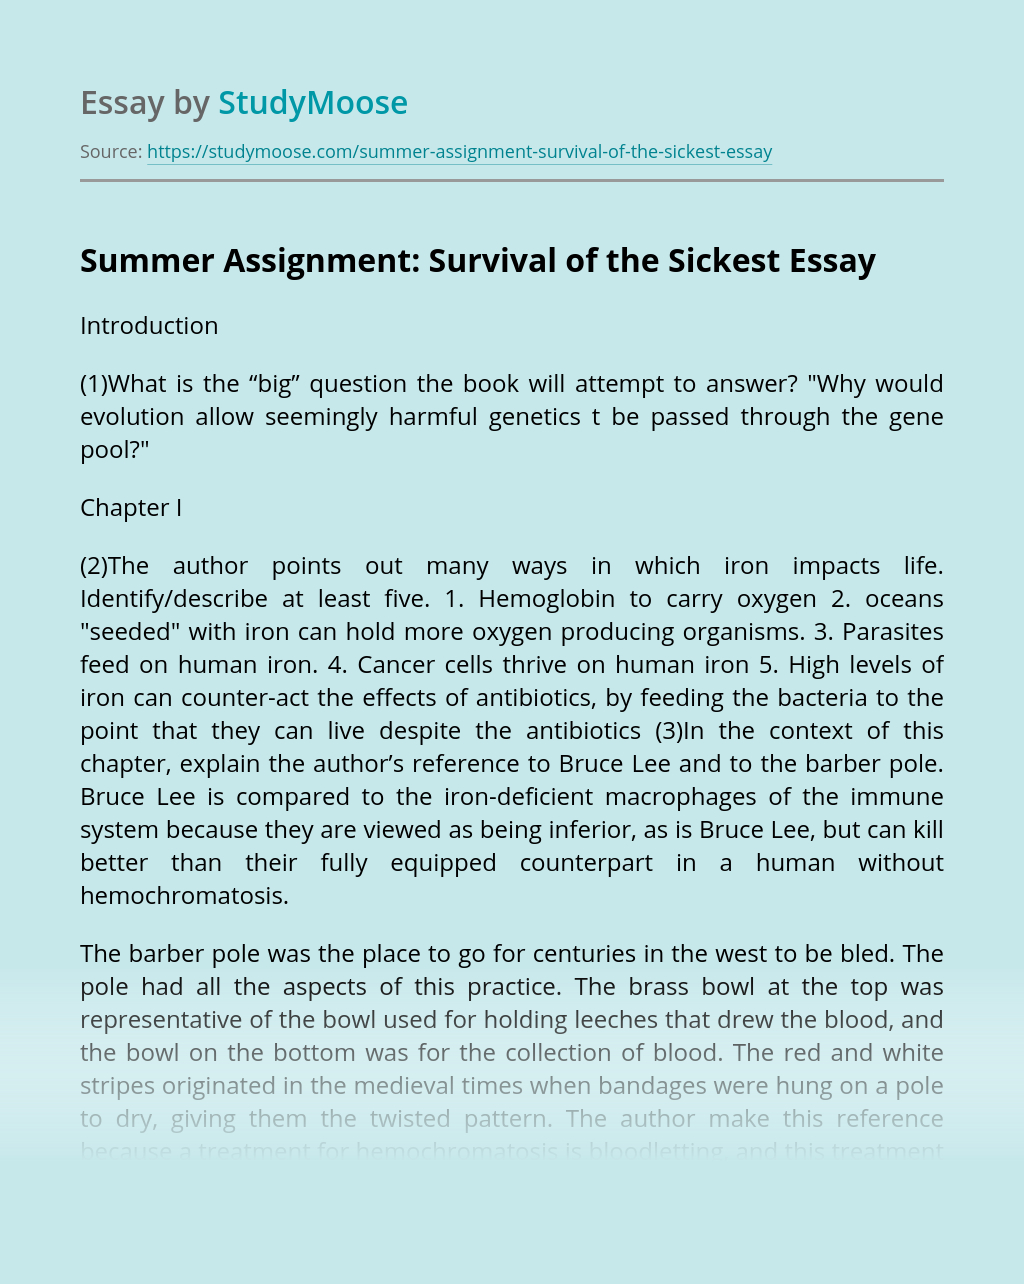 Summer Assignment: Survival of the Sickest